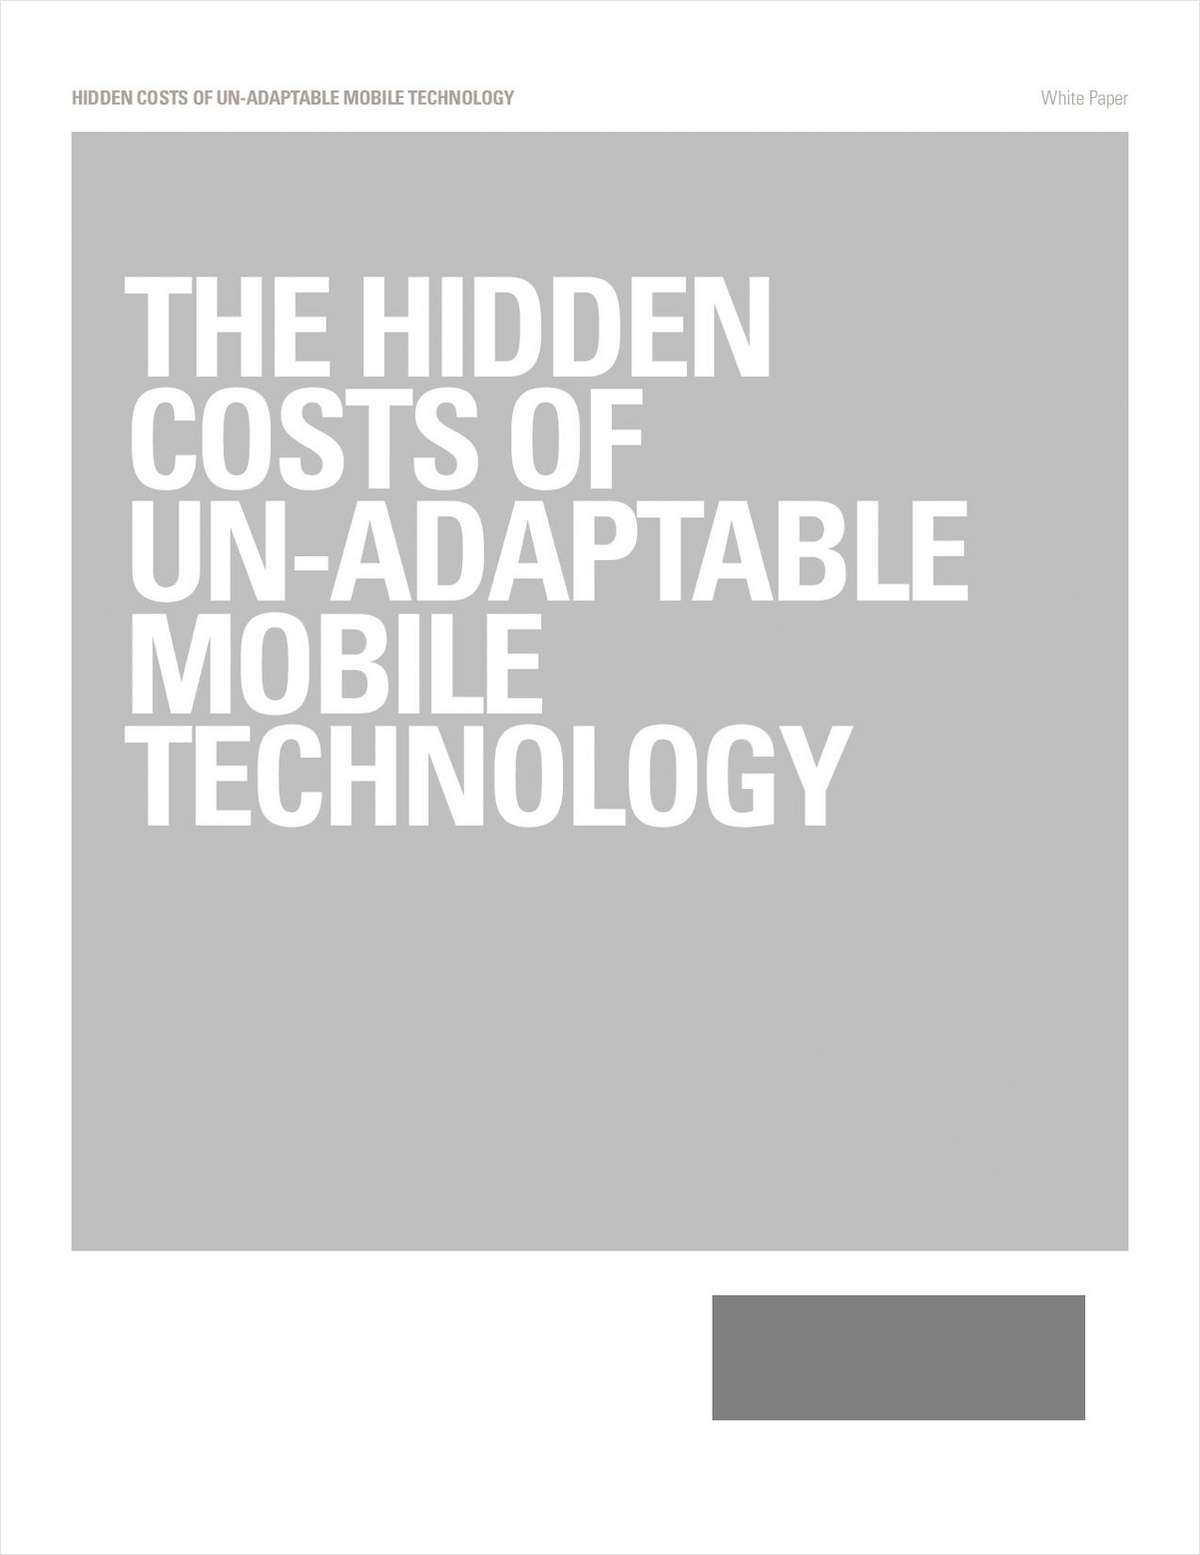 The Hidden Costs of Un-Adaptable Mobile Technology